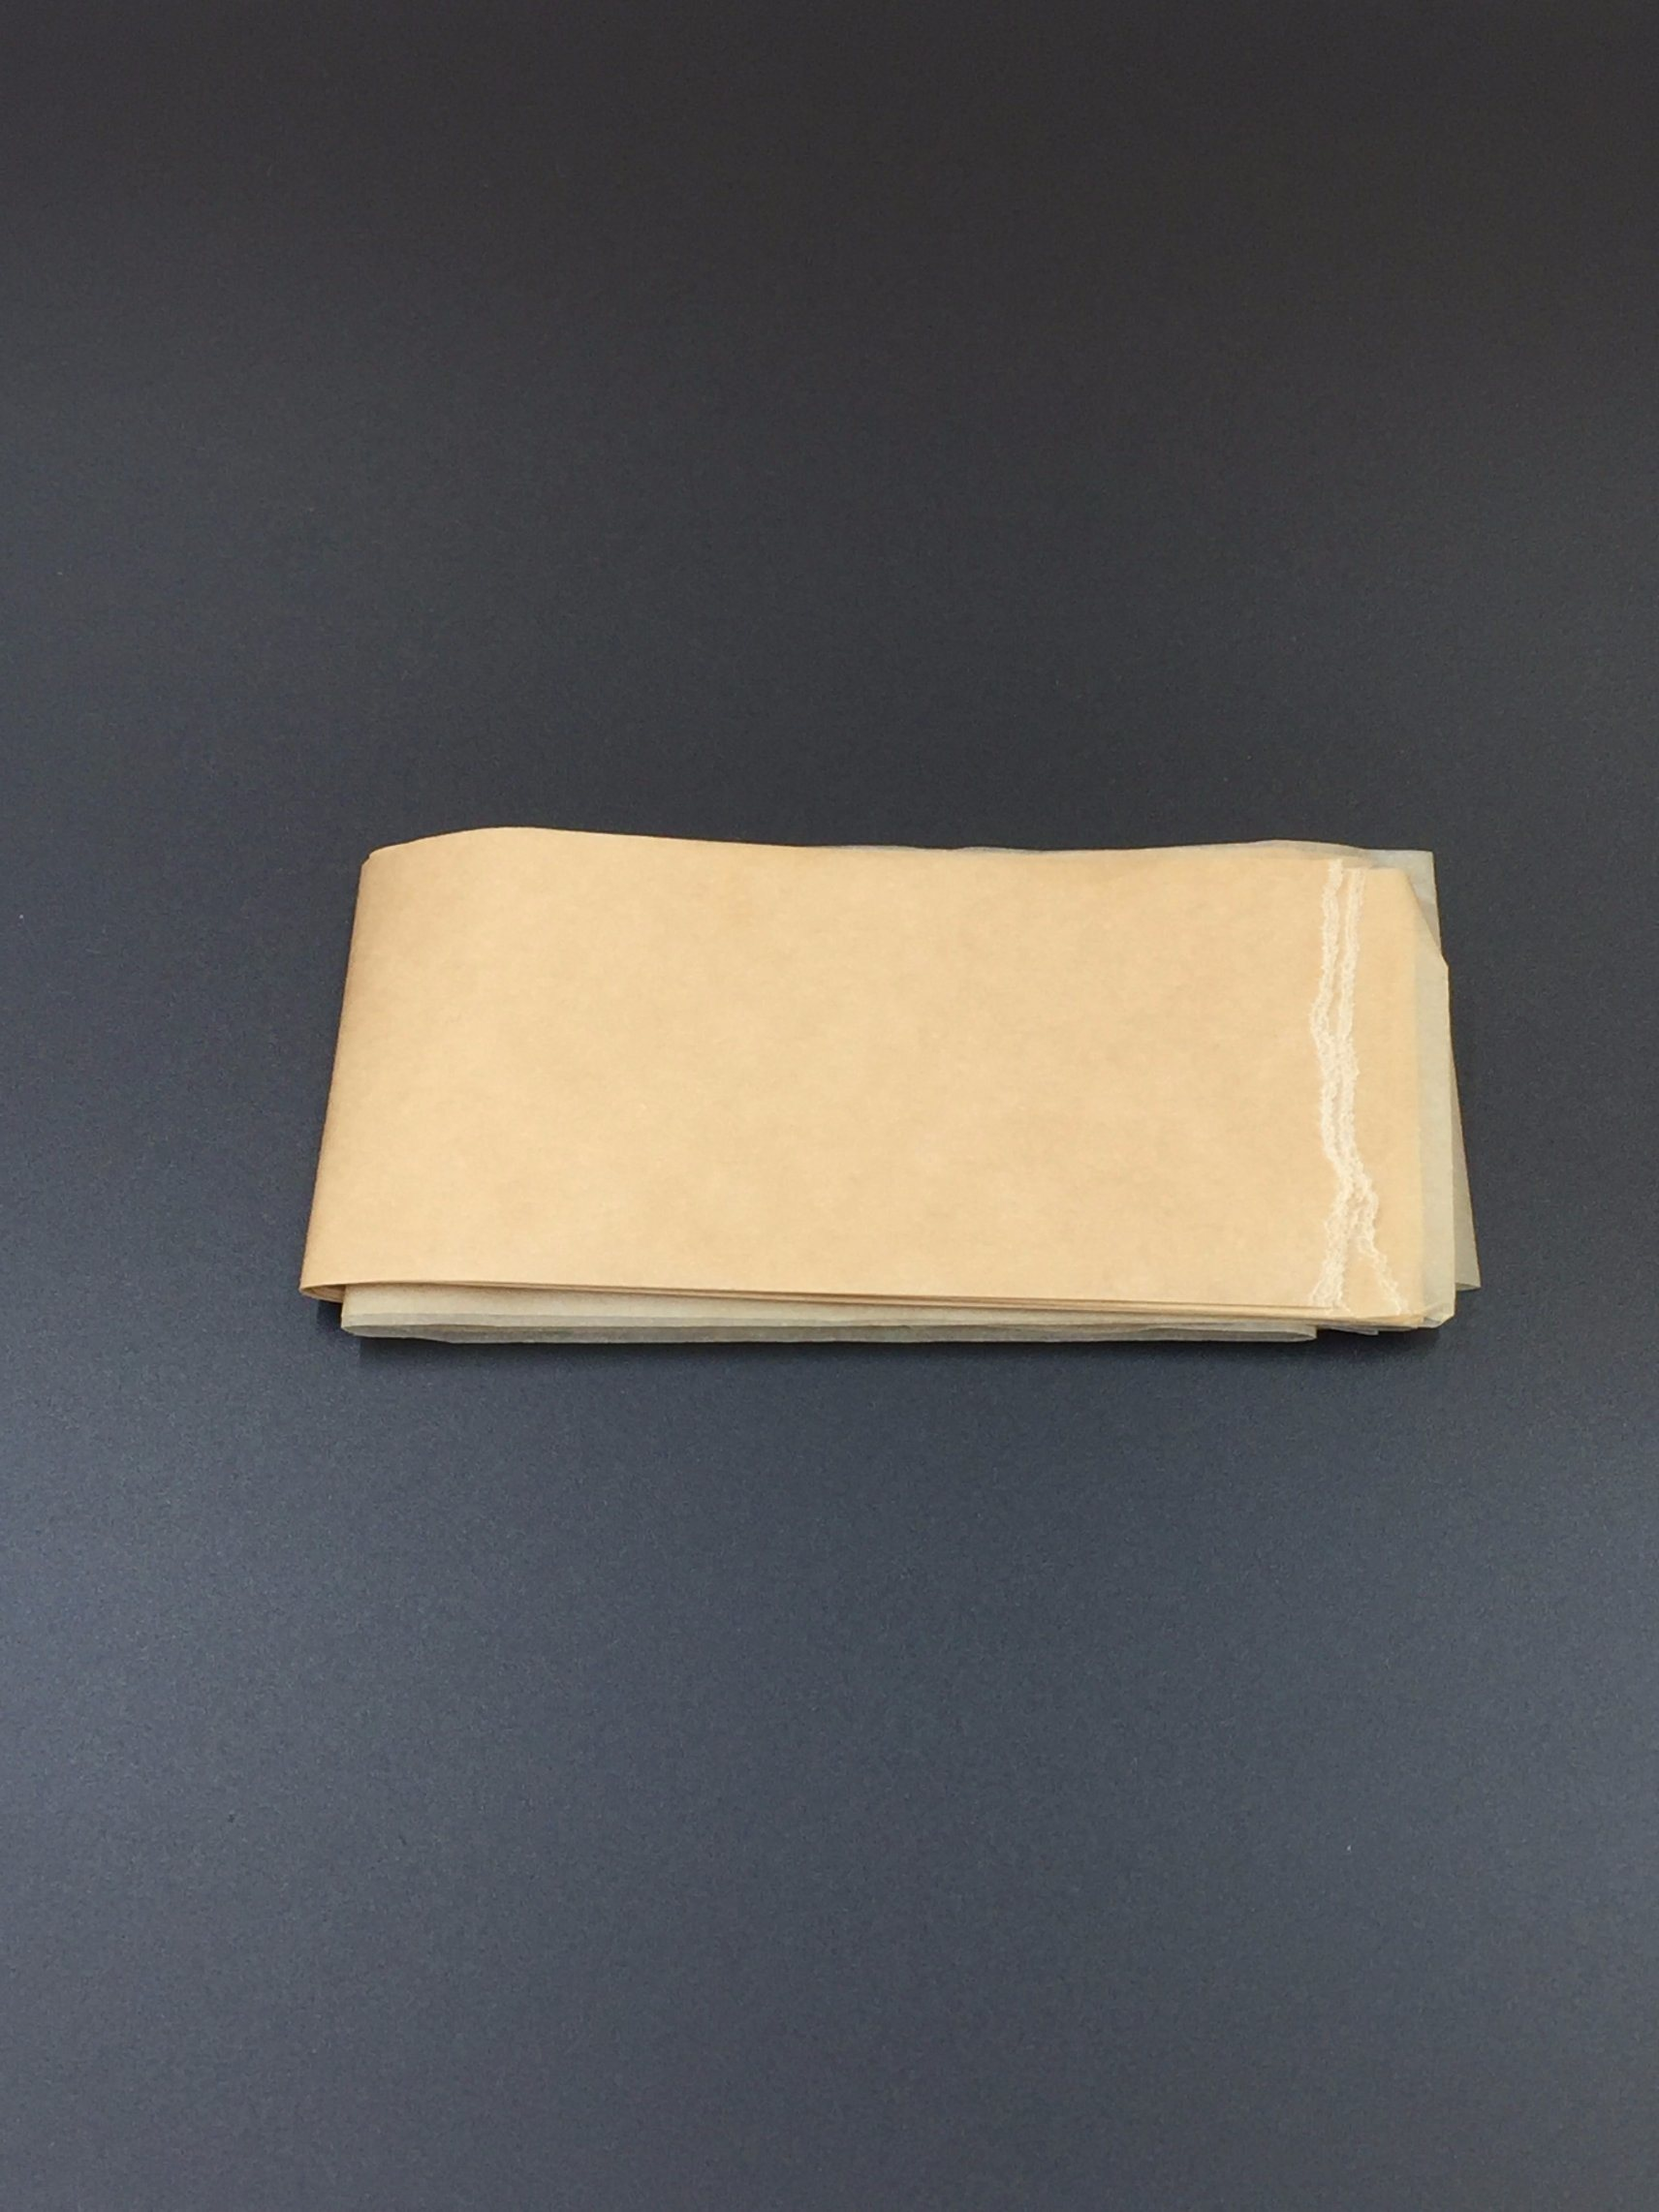 12.5GSM Brown Color Smoking Rolling Paper with King Slim Size